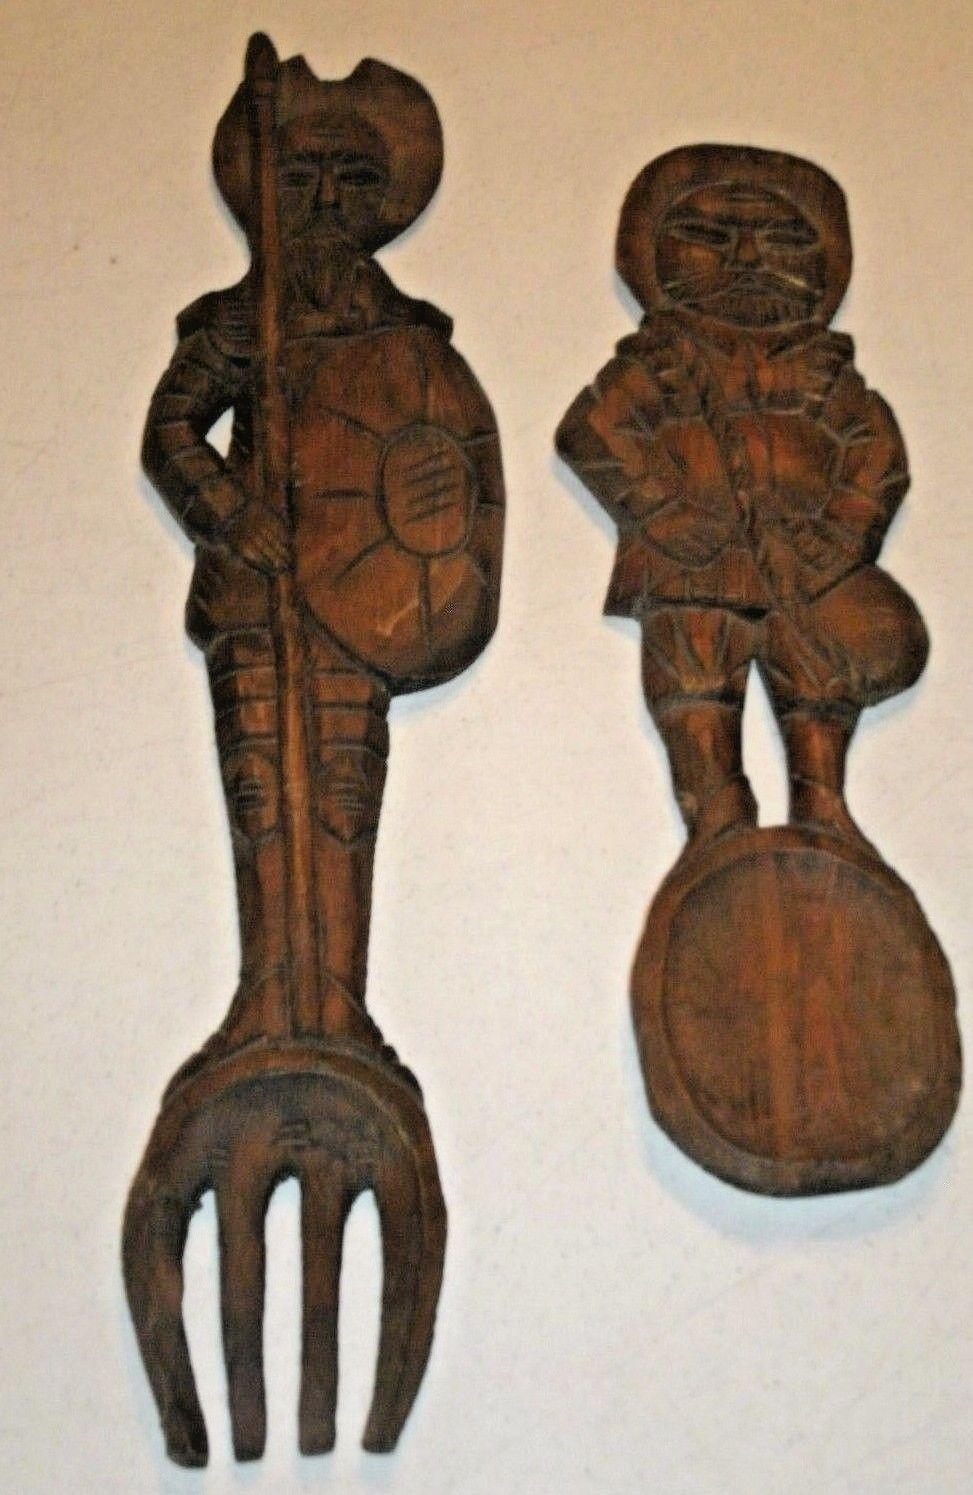 Don Quixote Sancho Panza Carved Set Of Carved Wood Fork Spoon Wall Pertaining To Wooden Fork And Spoon Wall Art (Image 4 of 20)